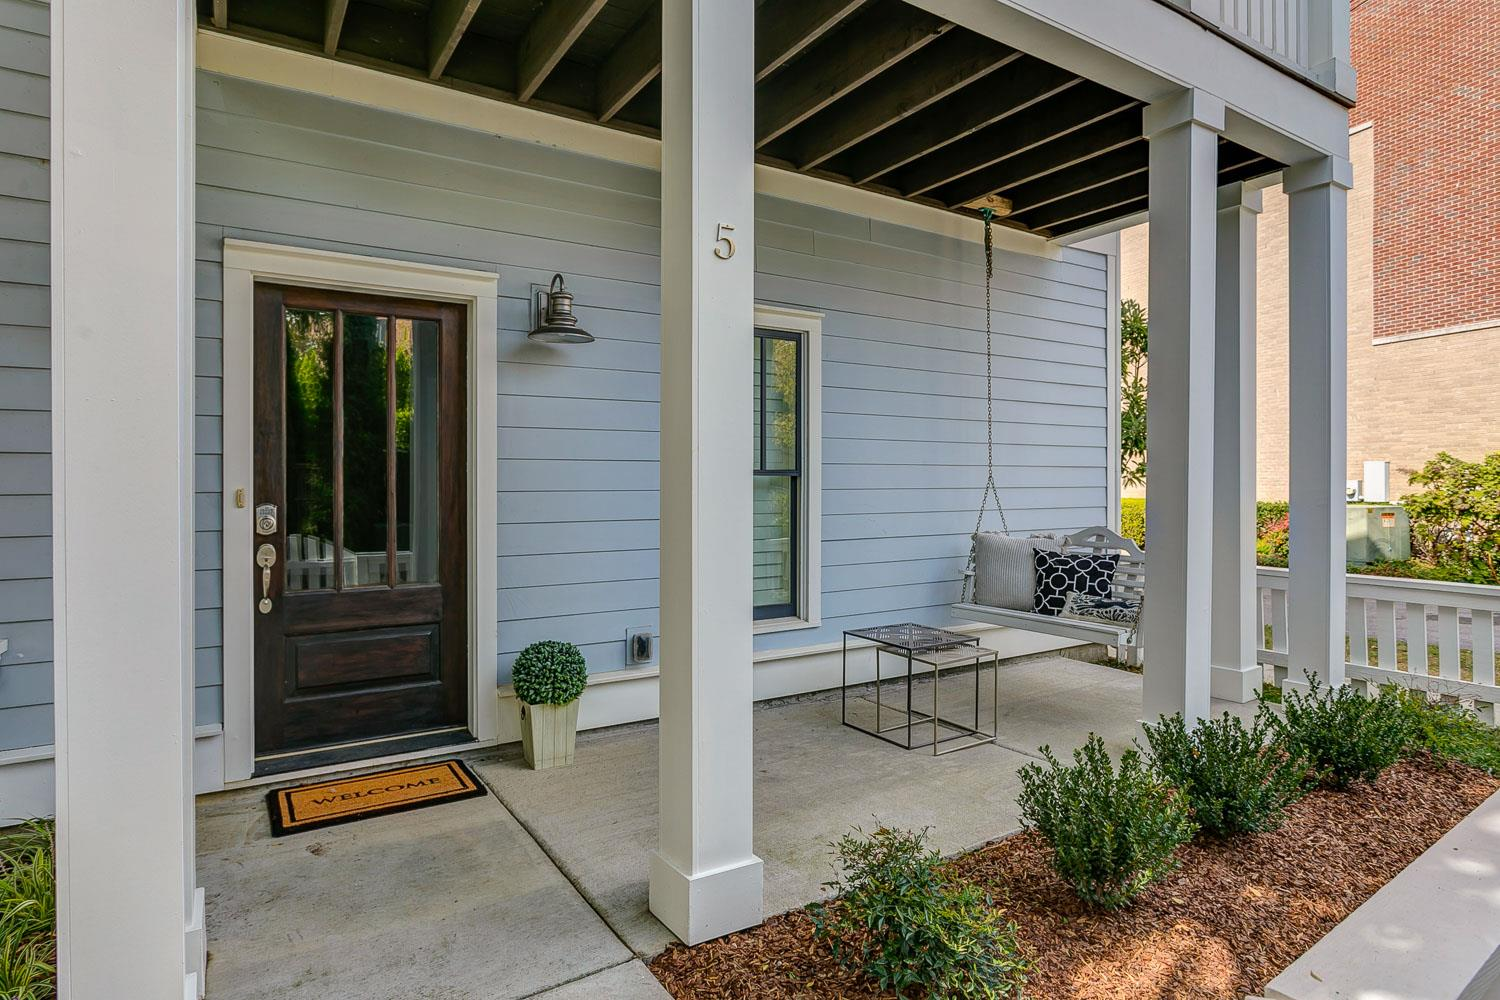 200 Burns Ave Apt 5, Nashville - Midtown in Davidson County County, TN 37203 Home for Sale